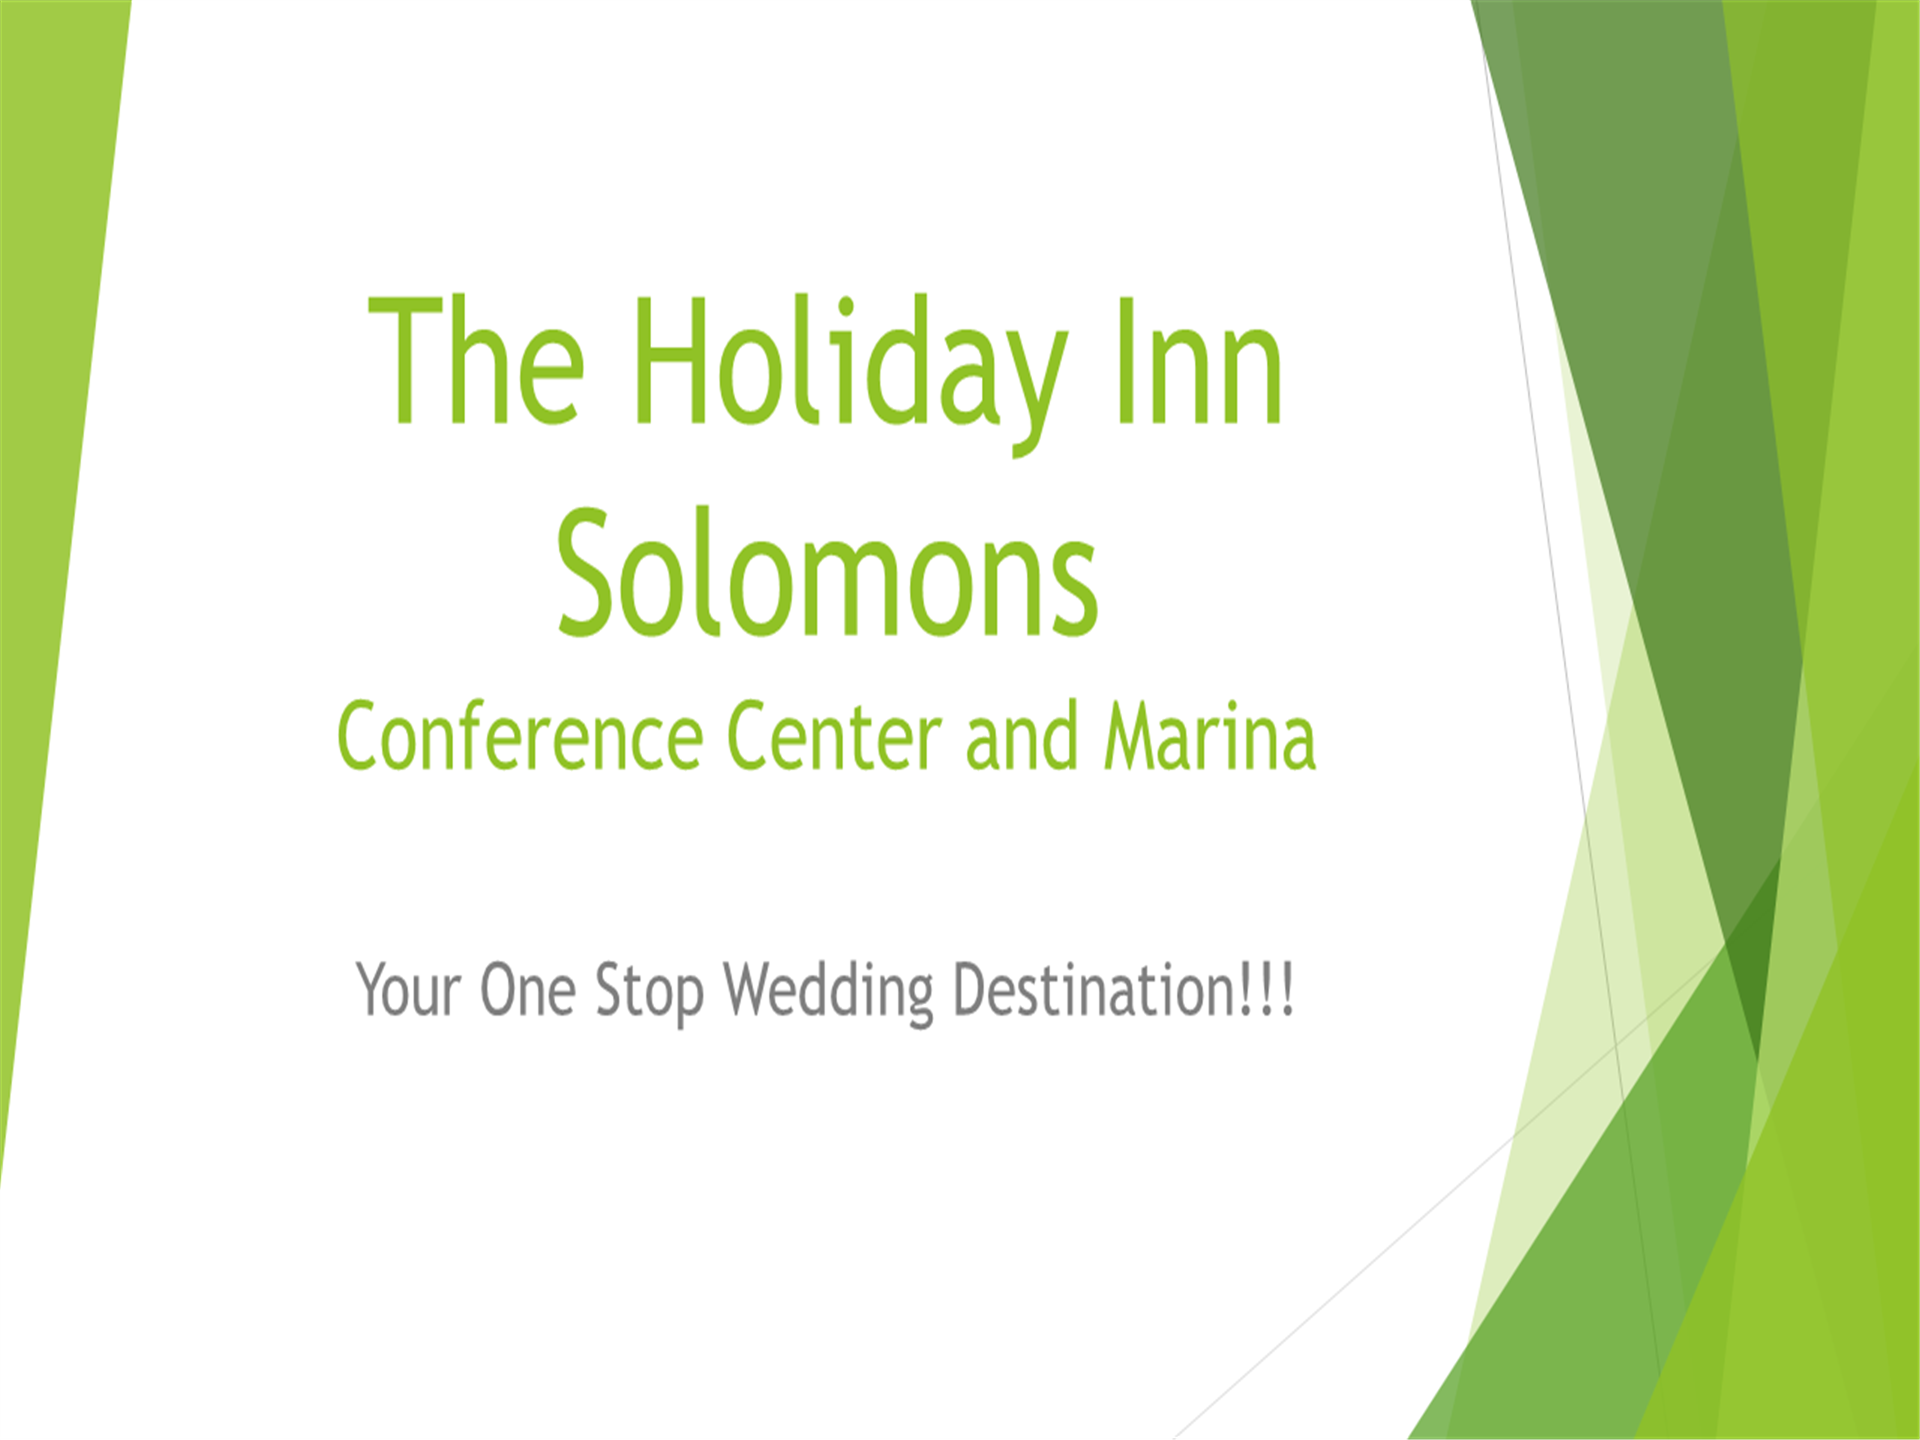 The Holiday Inn Solomons. Conference Center and Marina. Your one stop wedding destination!